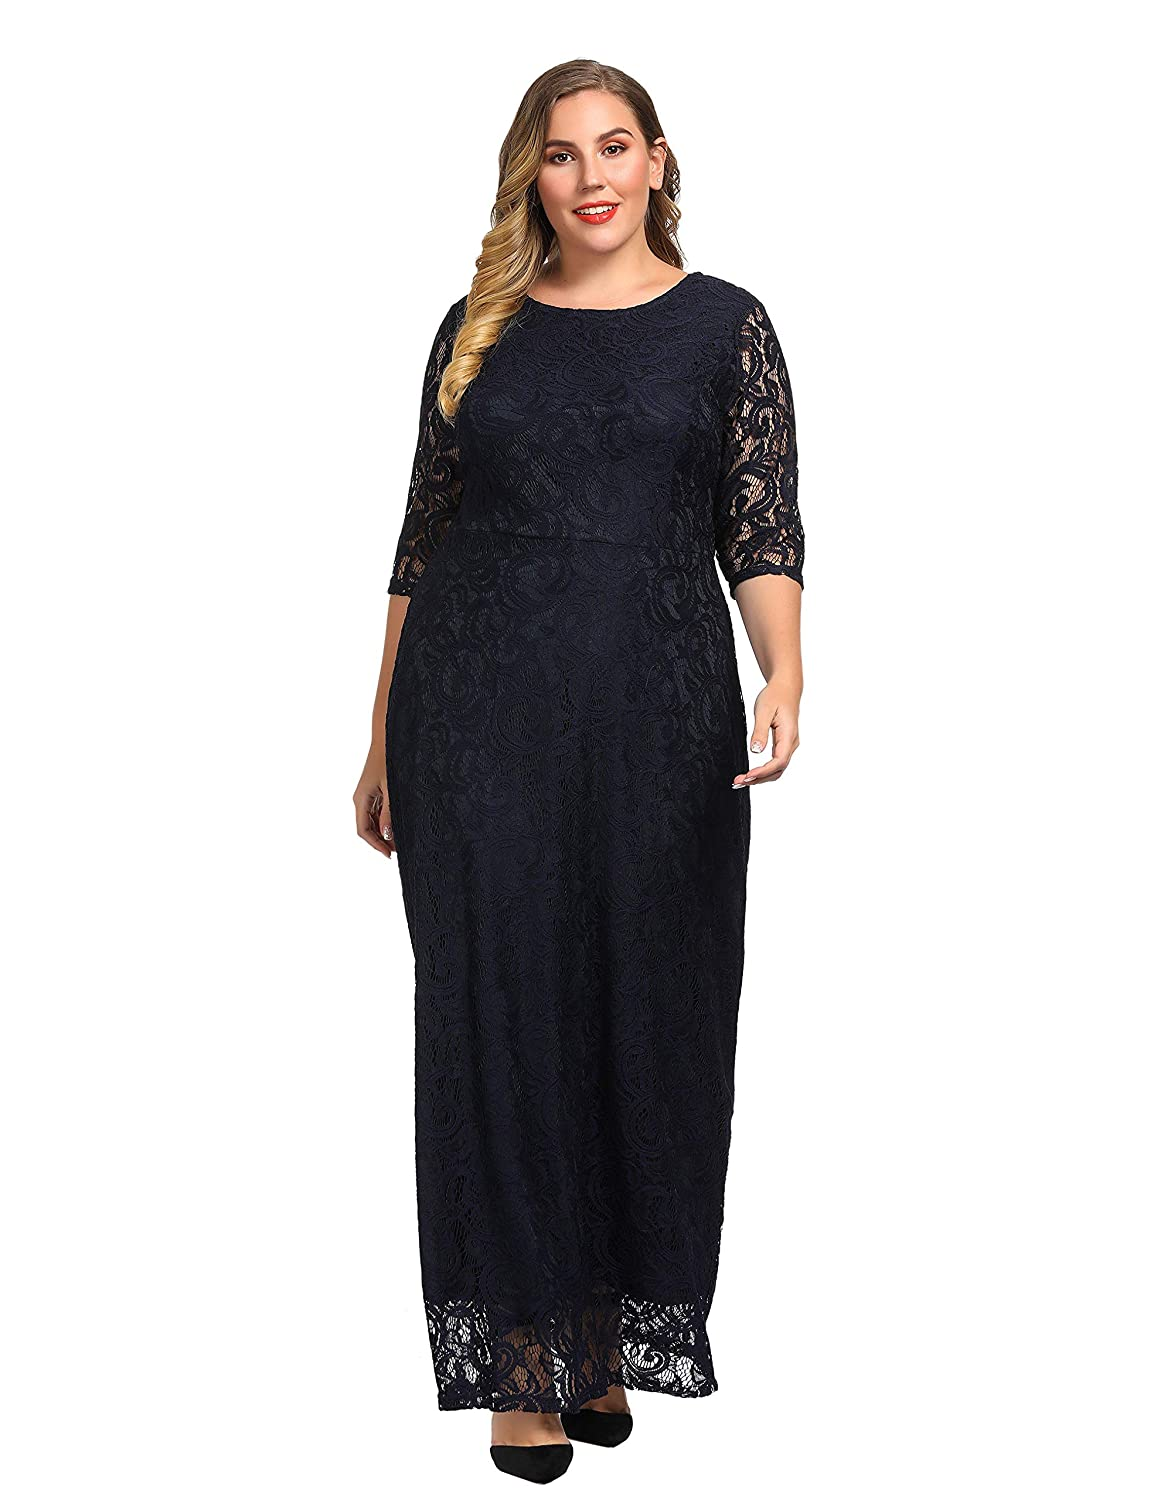 Chicwe Women s Plus Size Stretch Lace Maxi Dress - Evening Wedding Cocktail  Party Dress at Amazon Women s Clothing store  b35b5723b